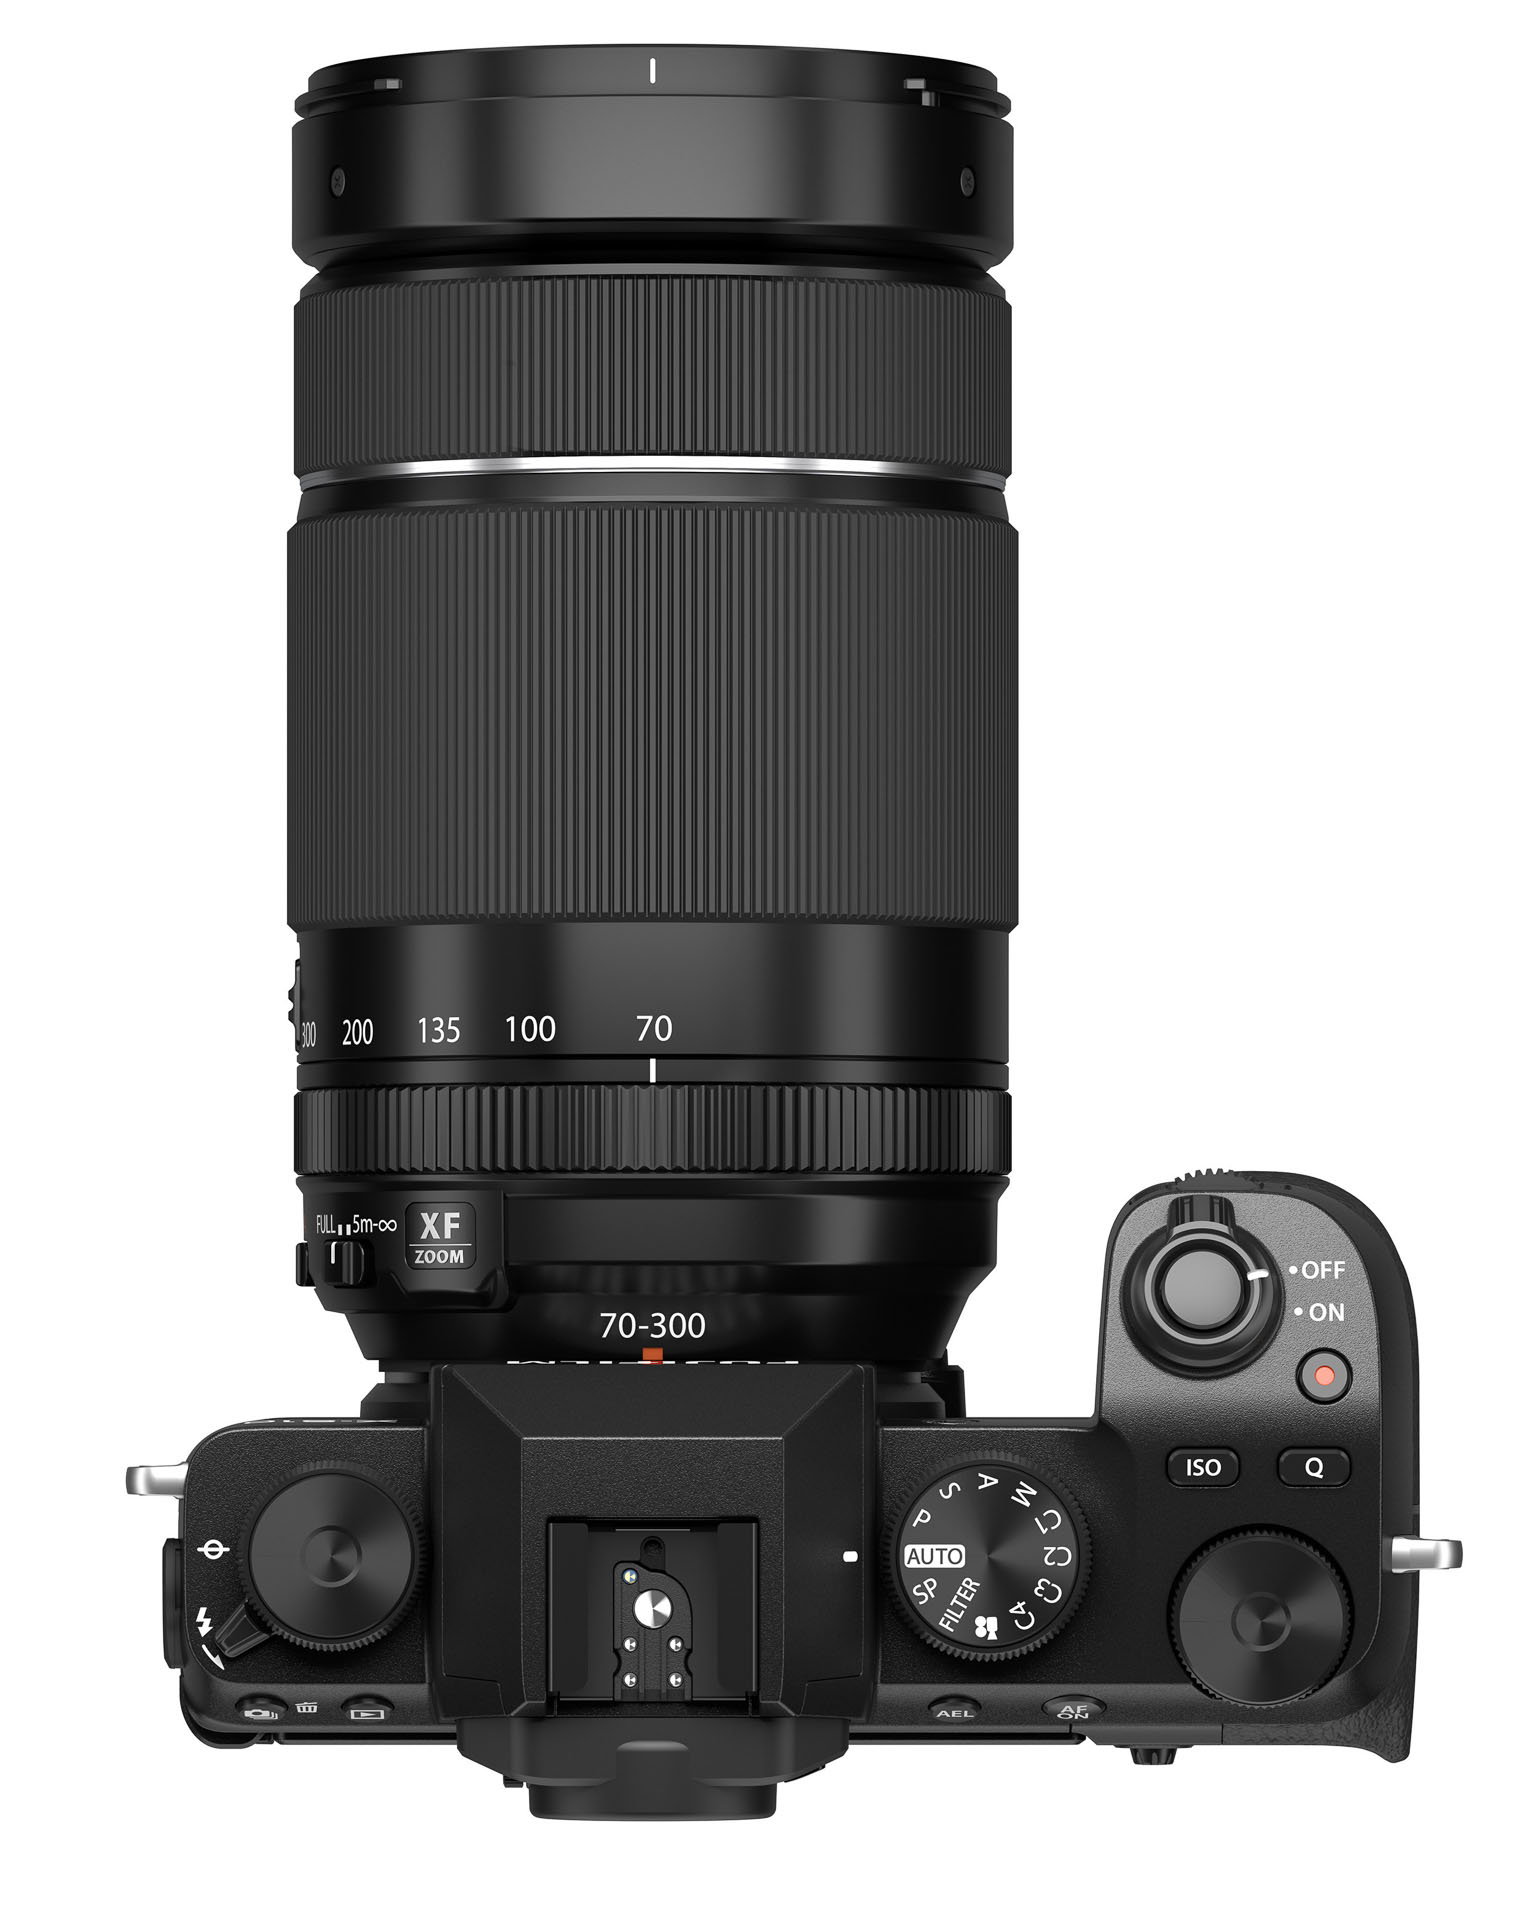 XF70-300mm on X-S10